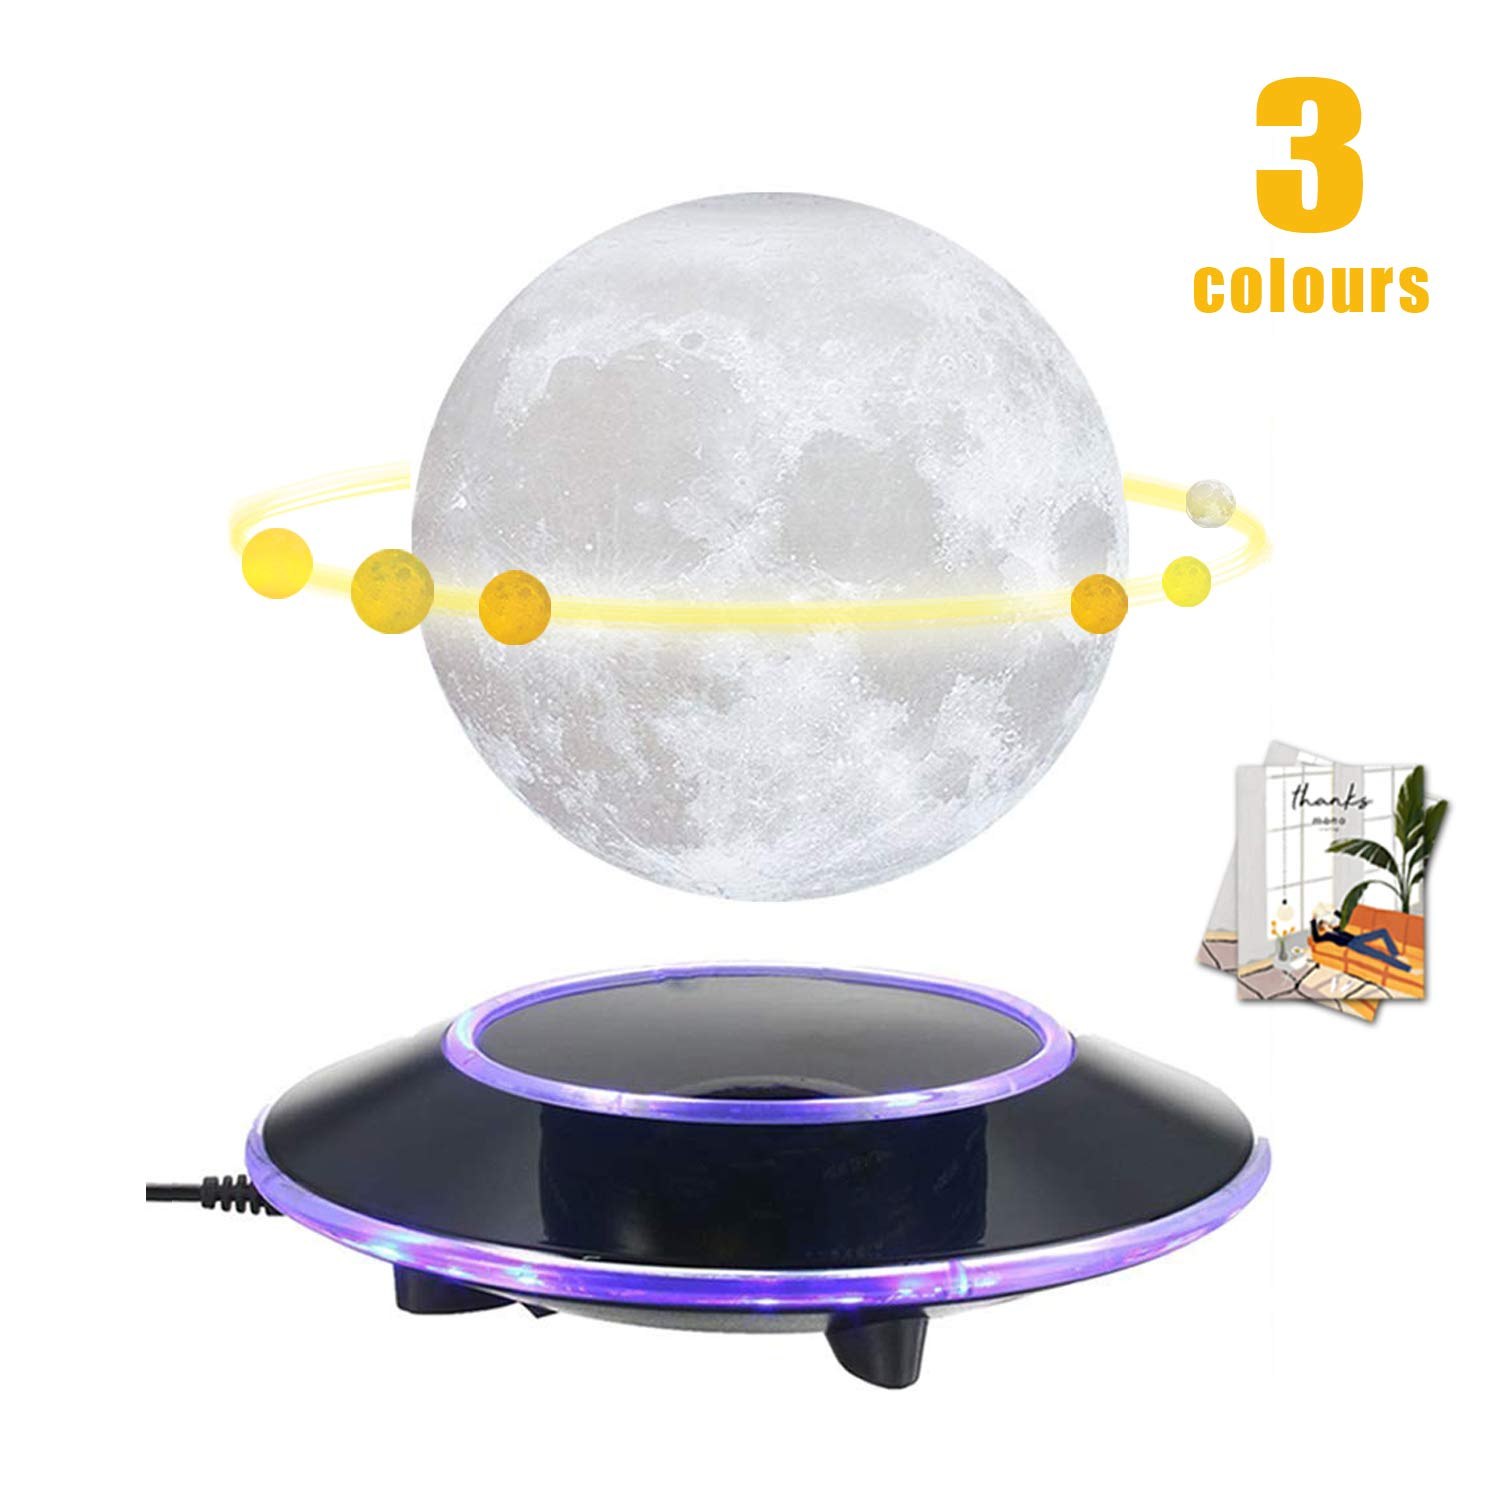 mono living Magnetic Levitating Moon Lamp Night Light 3D Print LED Auto Rotate Table Lamp TechToy Birthday Easter Gift for Her Him Mother Aunt Family Couple Daughter TeenGirl Boyfriend Girlfriend 5.9''